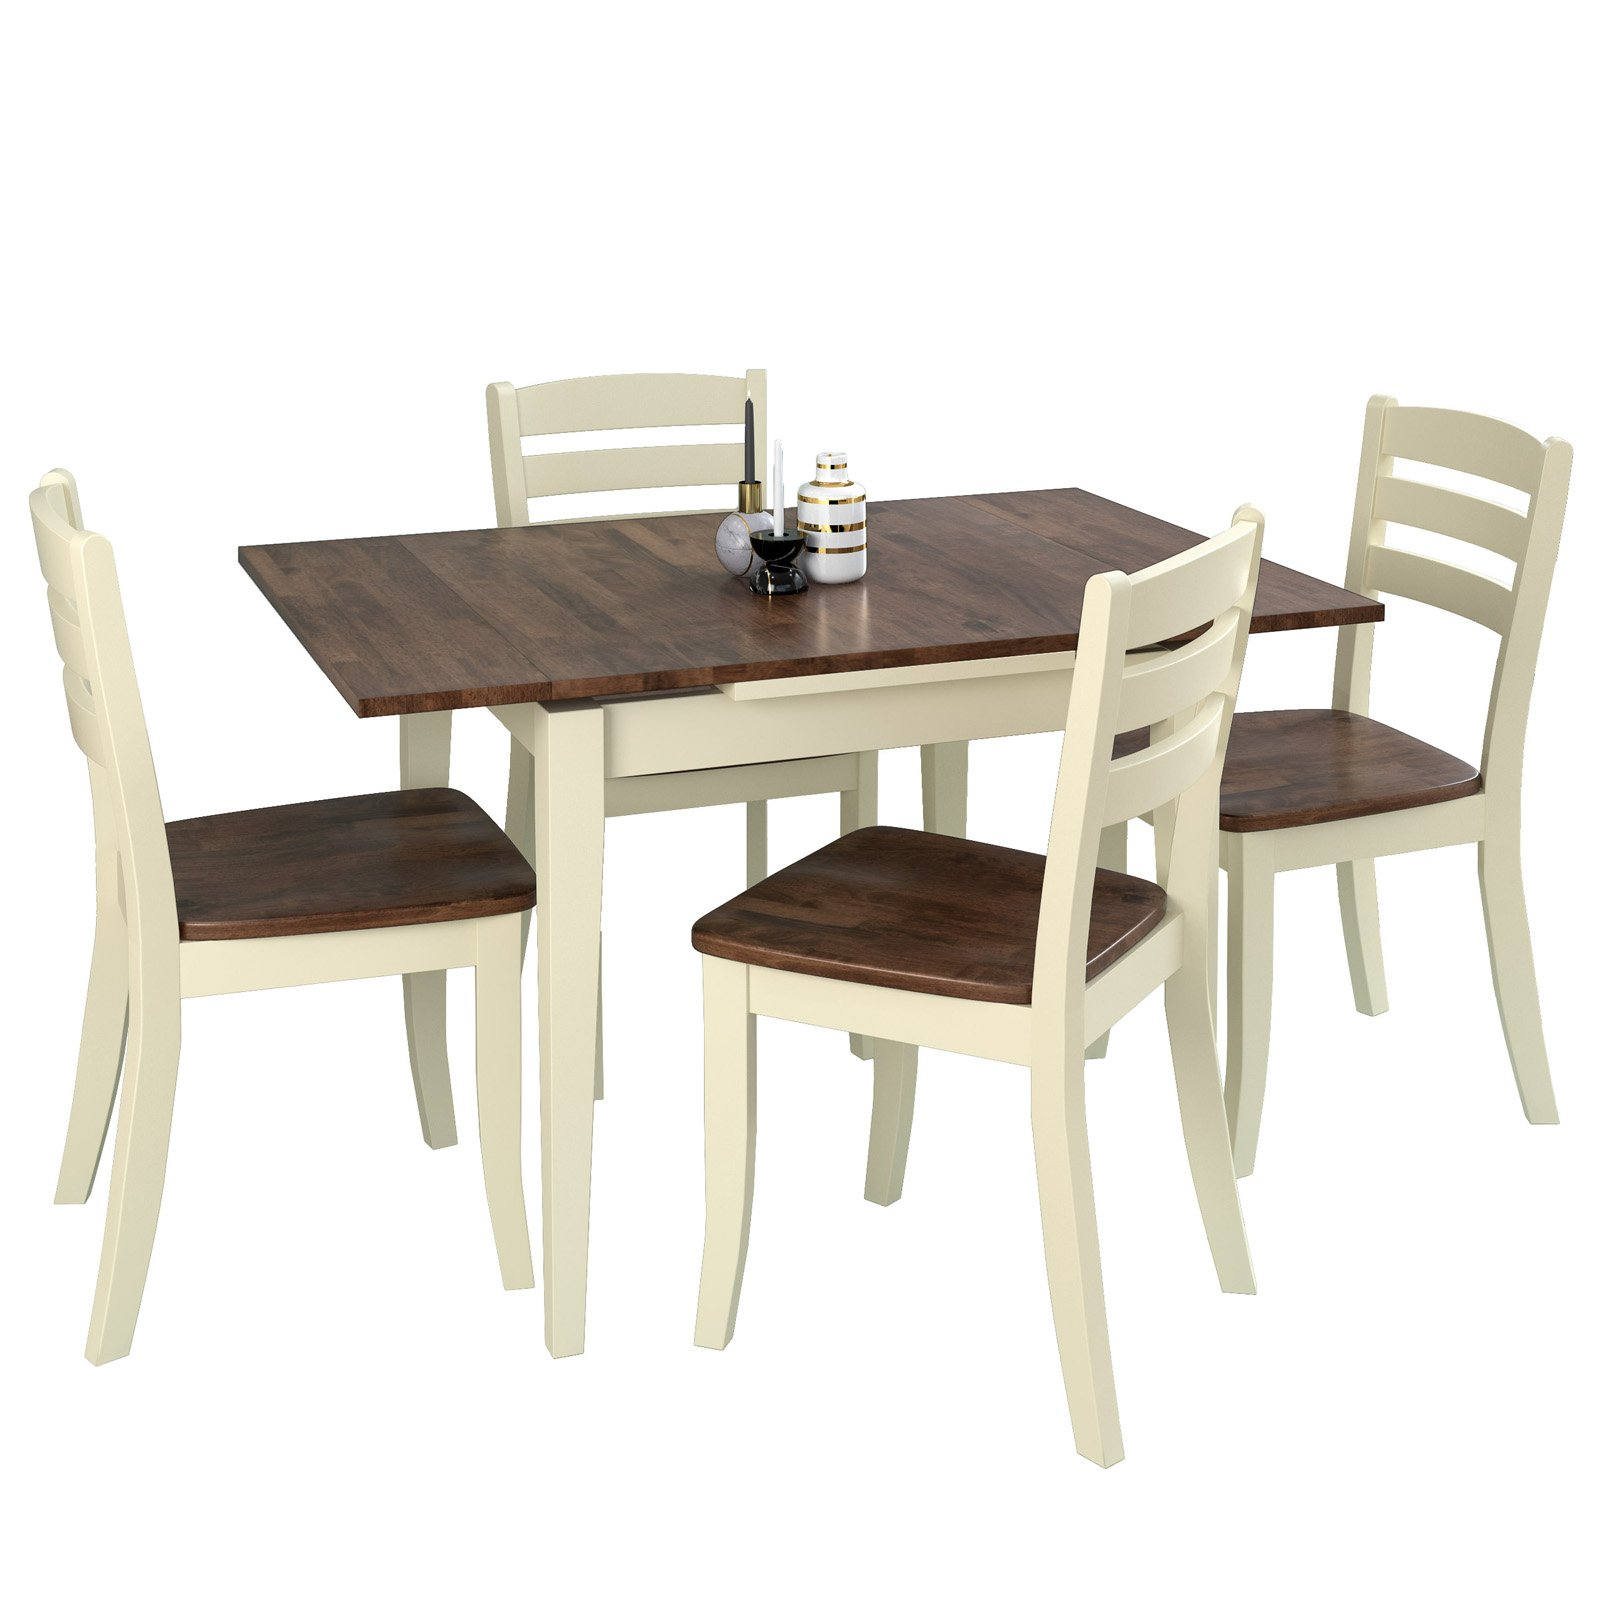 Corliving Dillon 5 Piece Rectangular Extendable Dining Set Intended For Most Recently Released Smyrna 3 Piece Dining Sets (View 7 of 25)